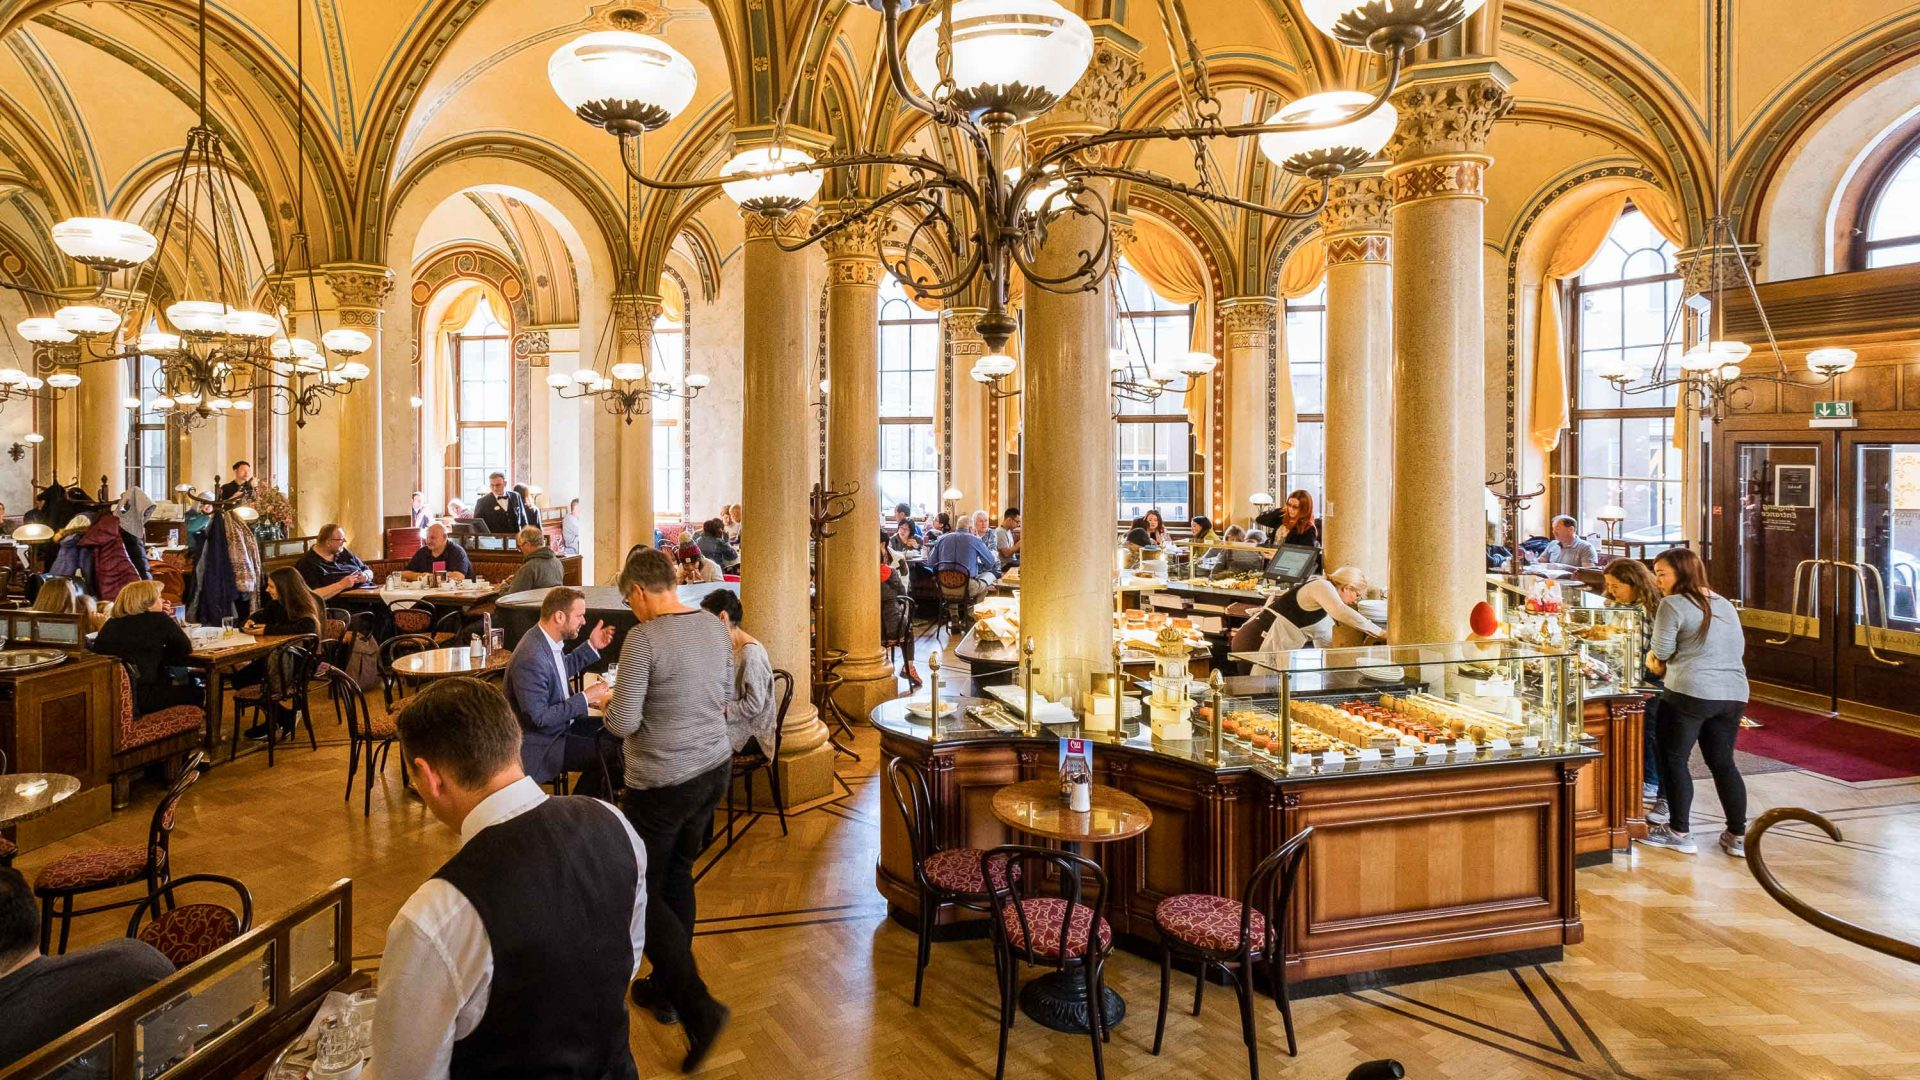 No phones, no wi-fi: The Viennese cafés that force you to talk to strangers